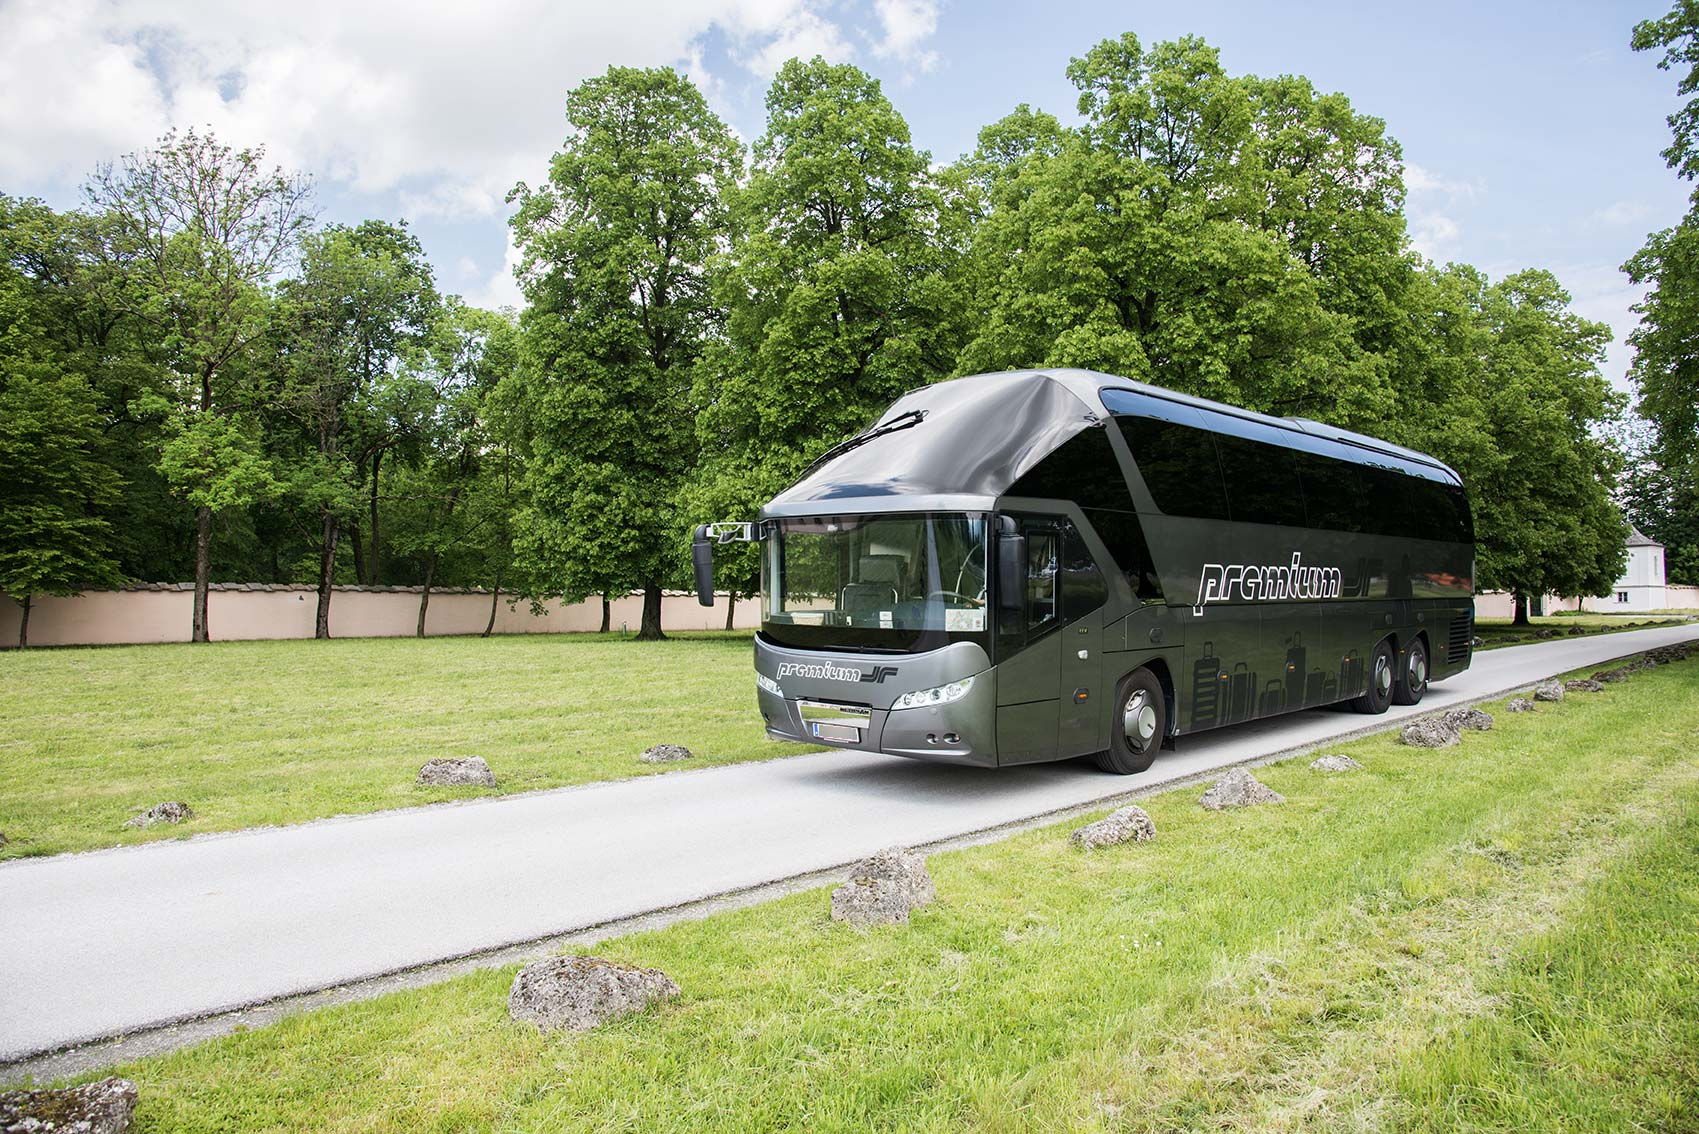 Dr Richard Bus mieten Premium Number One